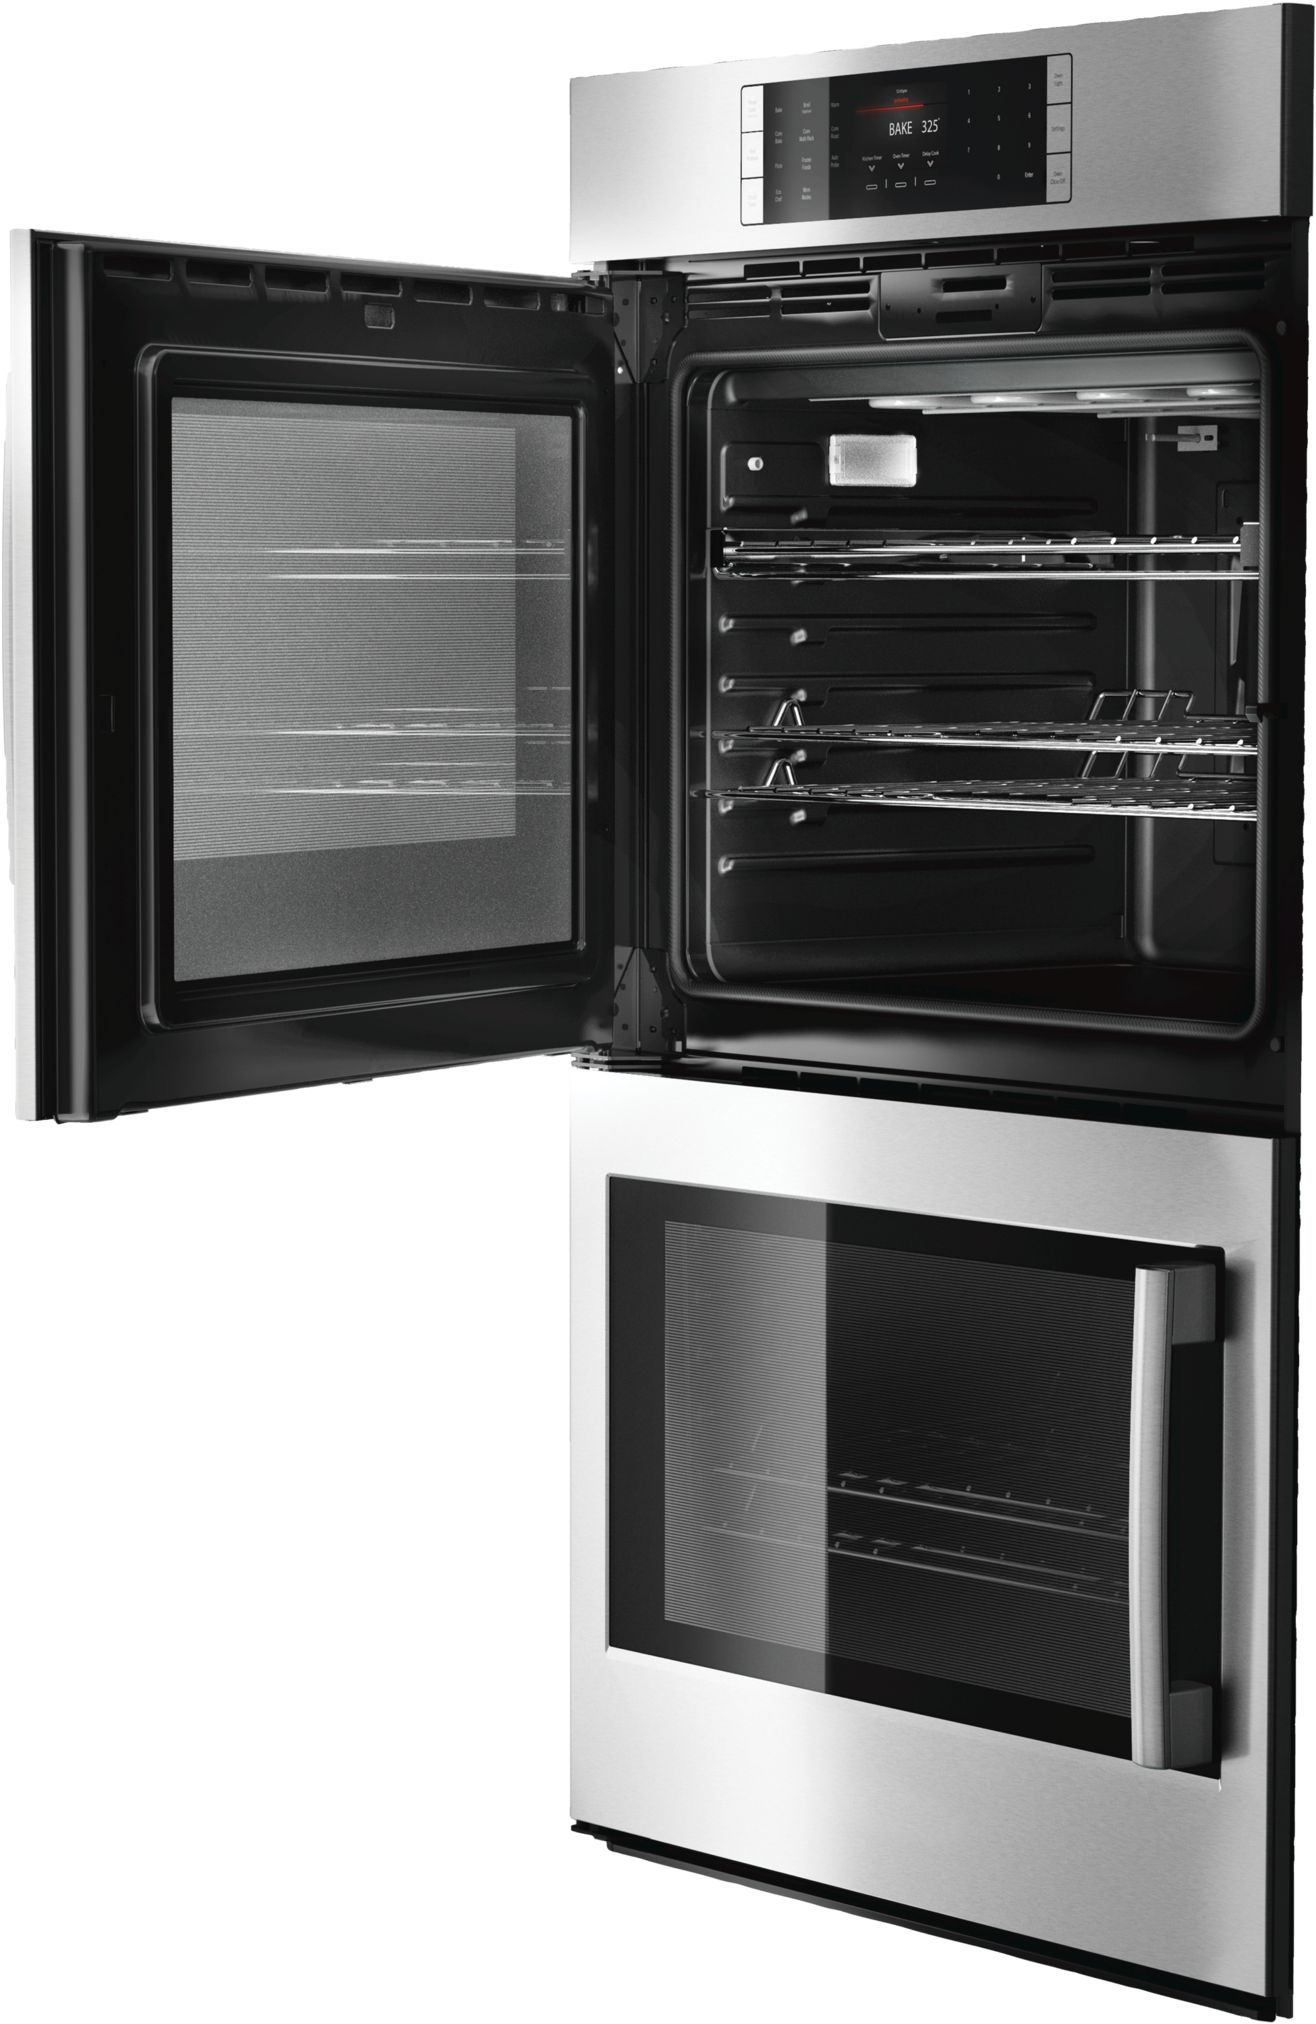 30 Double Wall Oven Left Sideopening Door Hblp651luc Stainless